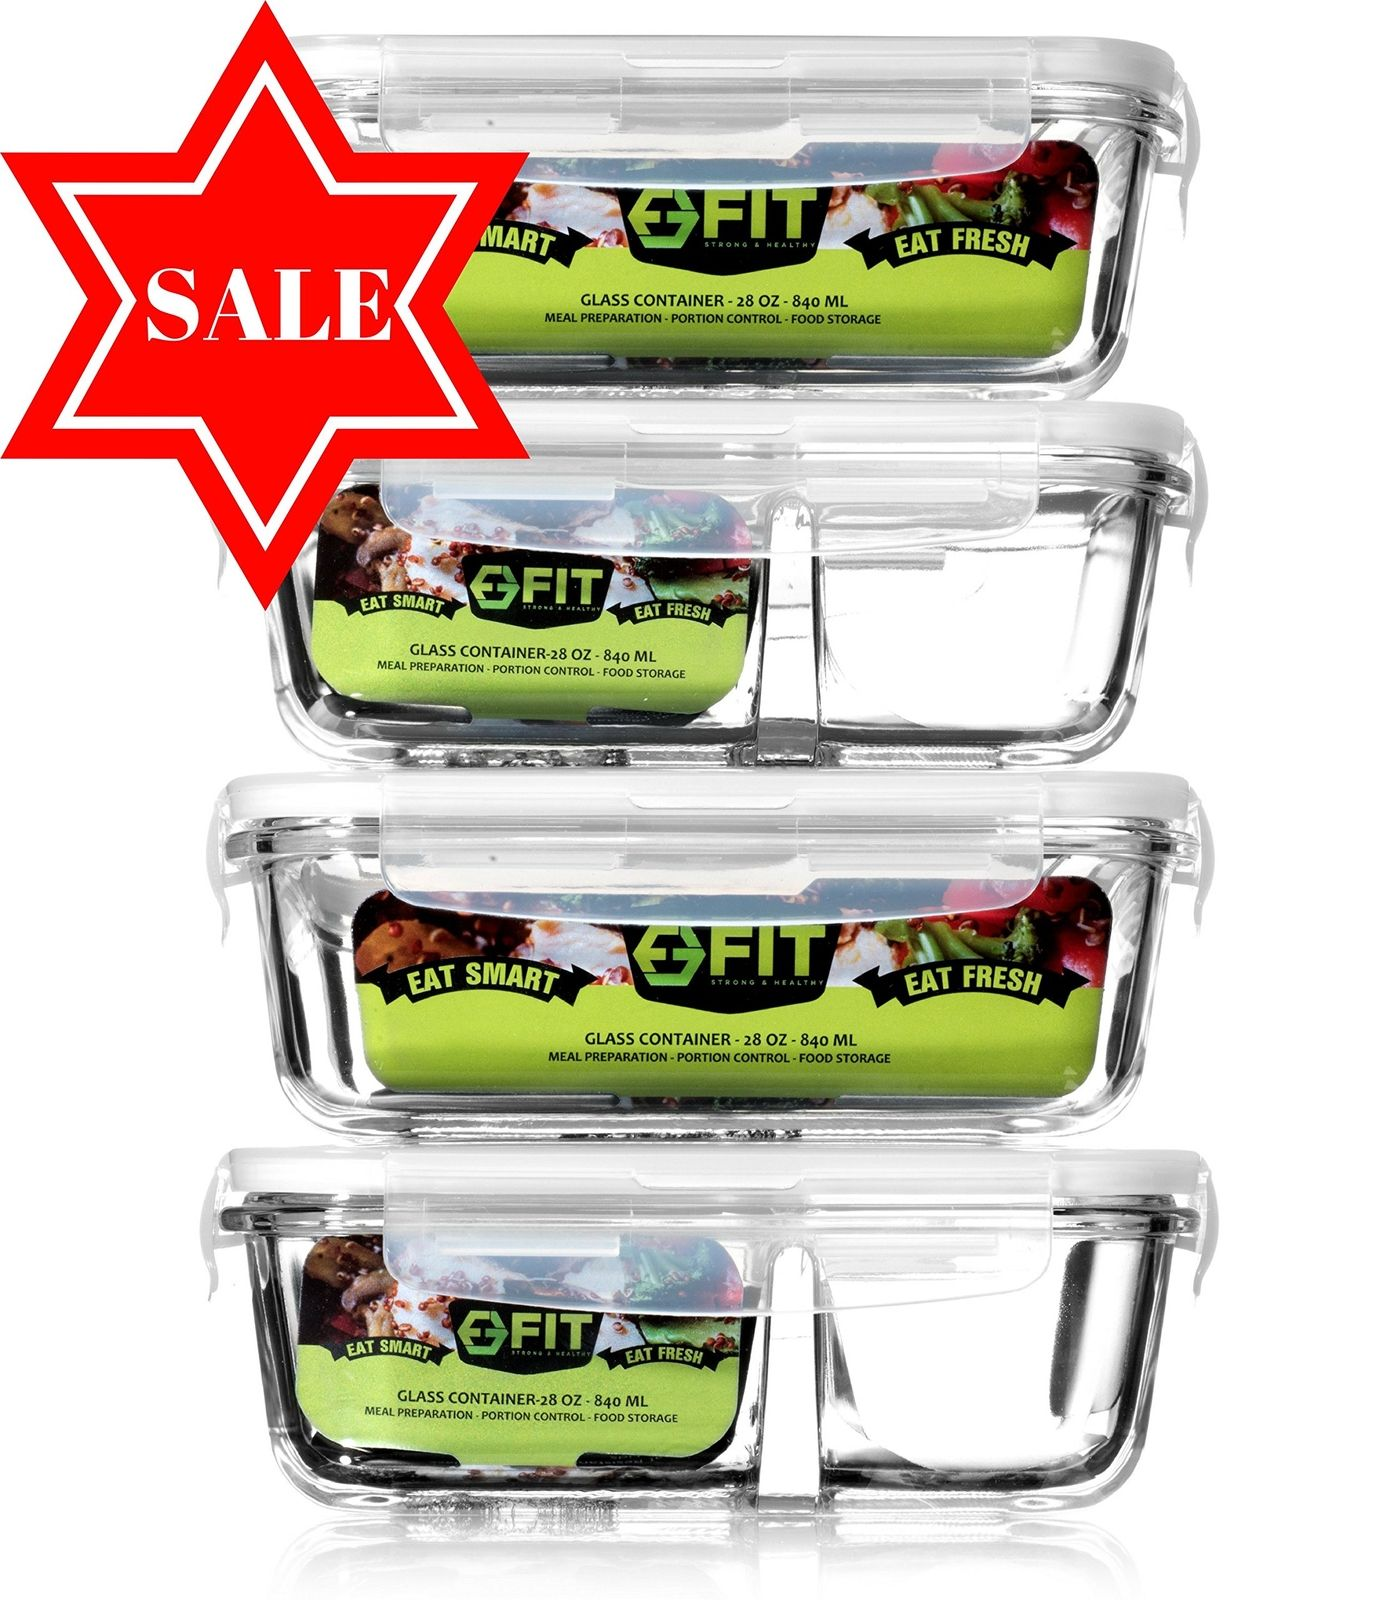 4 Glass Meal Prep Food Storage Containers And Lids 2 Compartment Containers Set 1